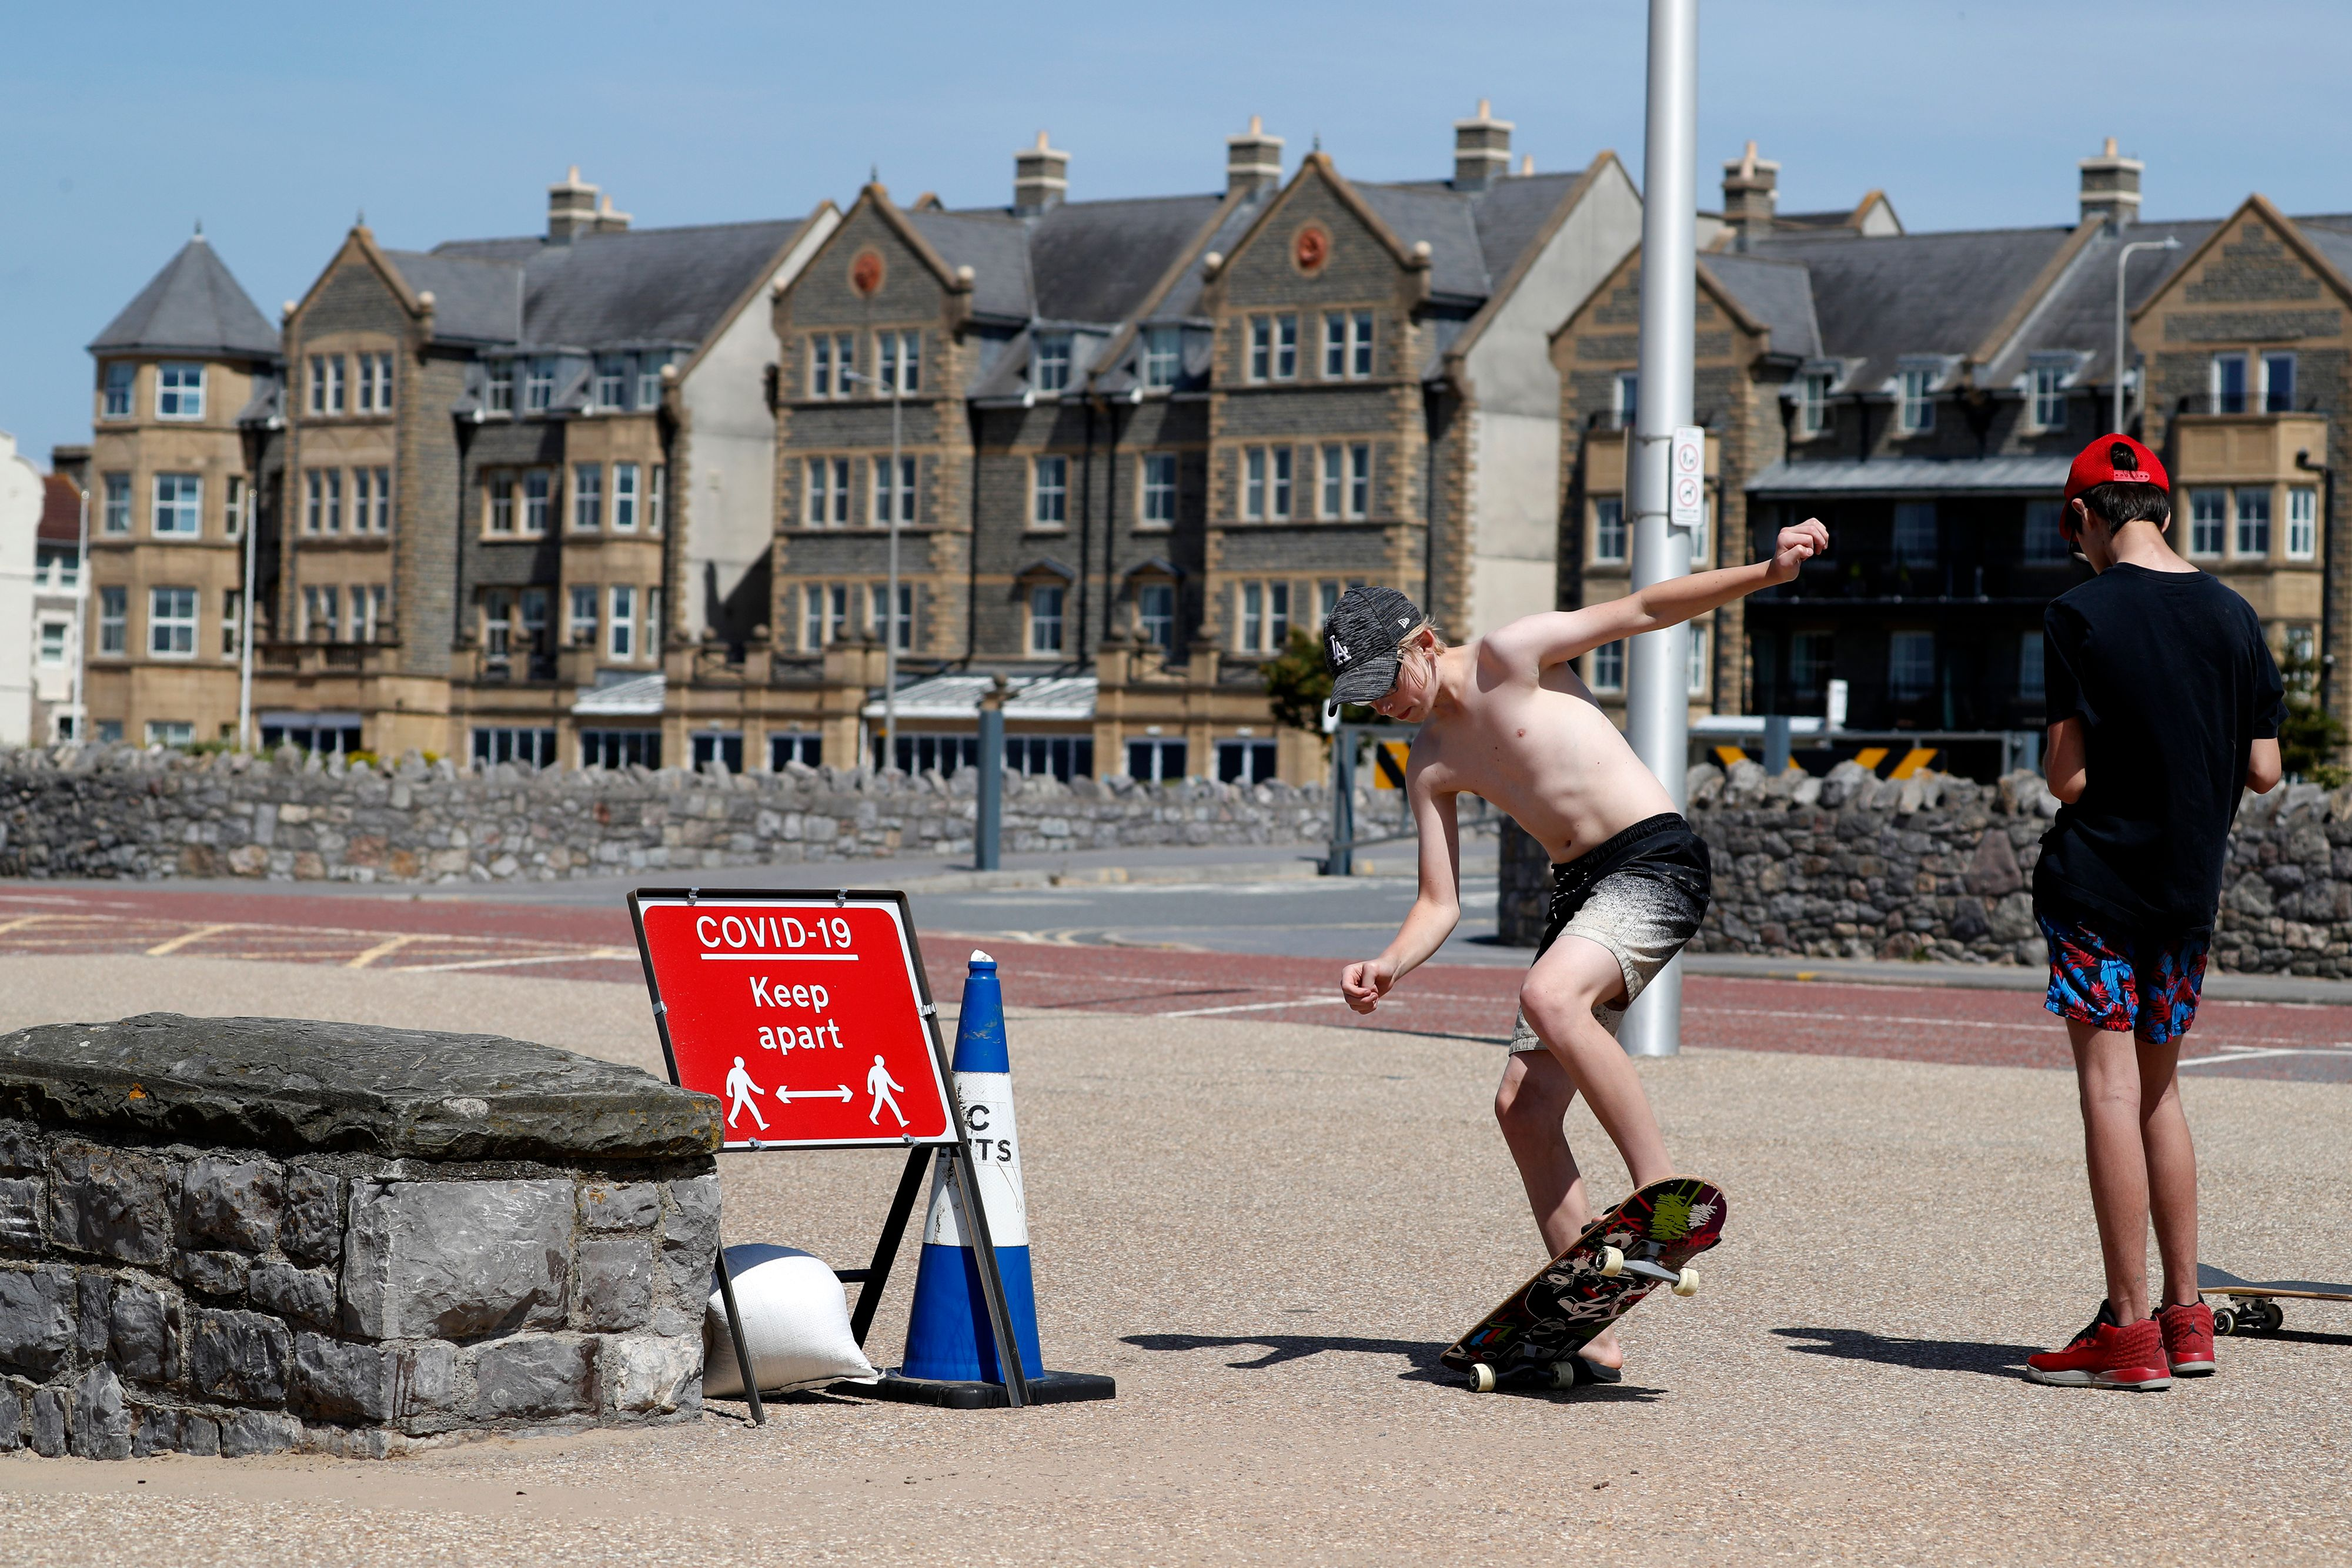 A sign displaying advice on social distancing is displayed at the beach in Weston-super-Mare, south west England on May 27, 2020, as lockdown measures are eased during the novel coronavirus COVID-19 pandemic. (Photo by Adrian DENNIS / AFP) (Photo by ADRIAN DENNIS/AFP via Getty Images)